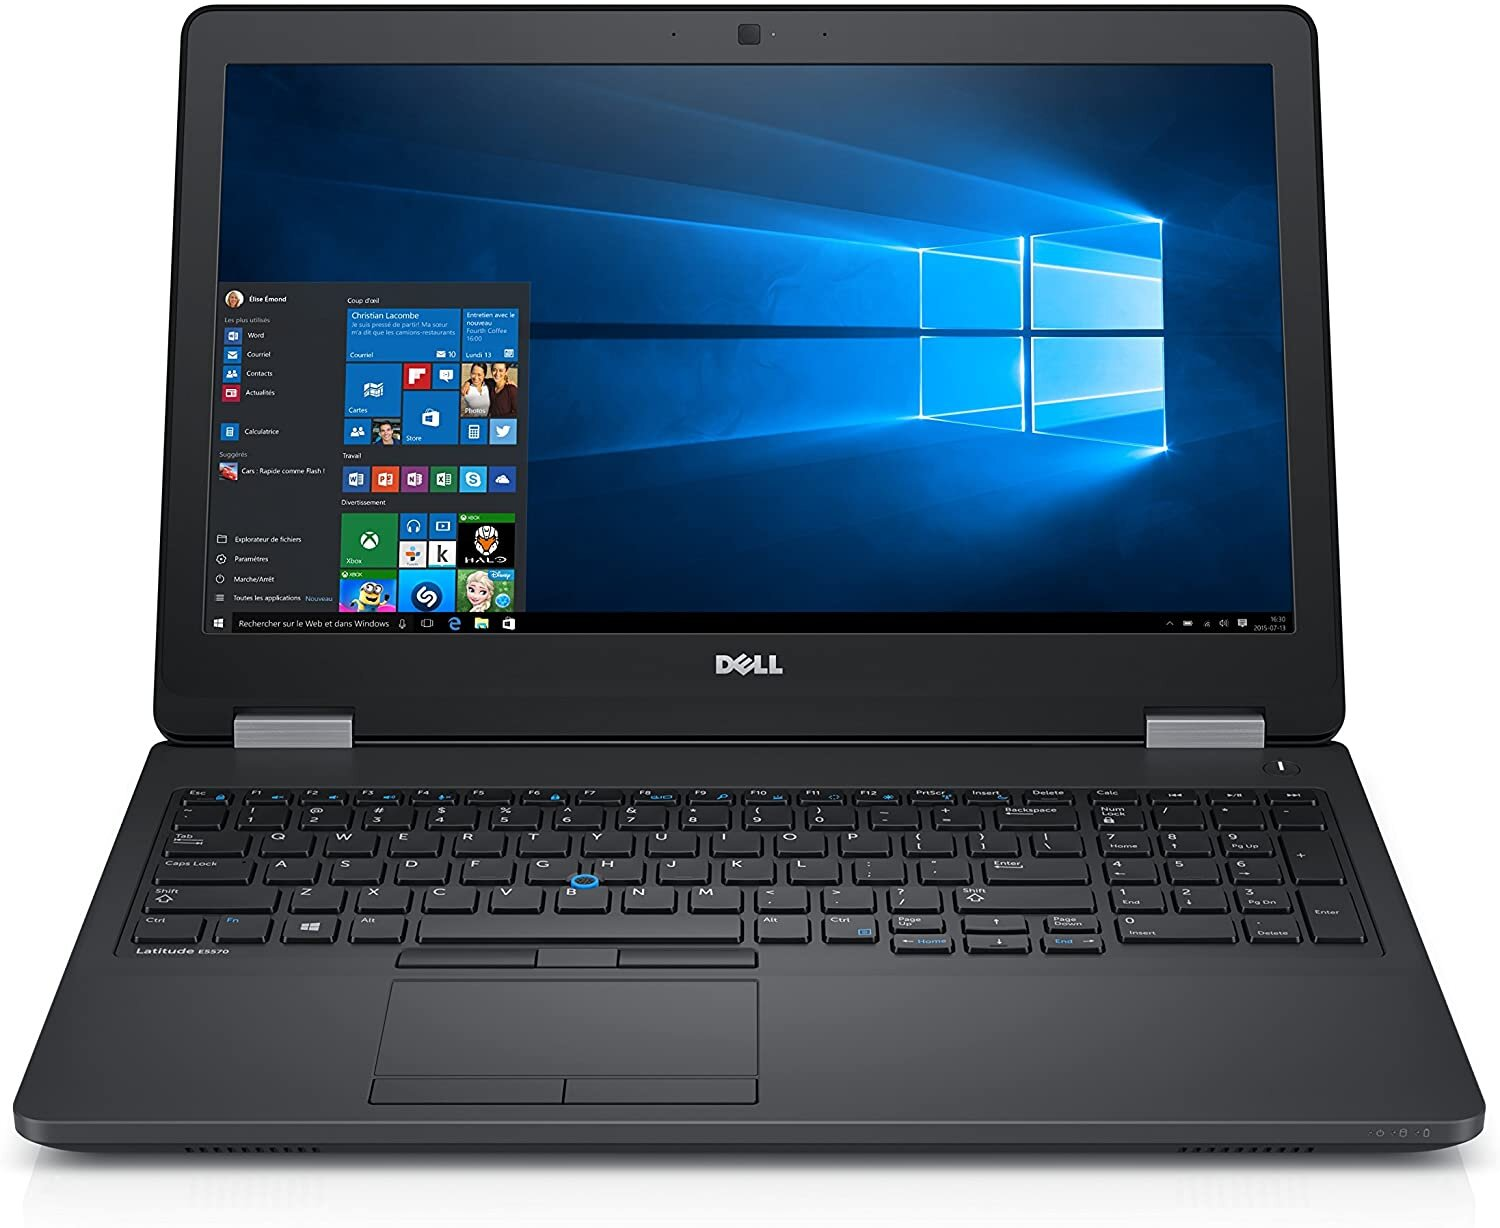 DELL Latitude E5570 I5-6440HQ 16GB 500GB Win10 PRO